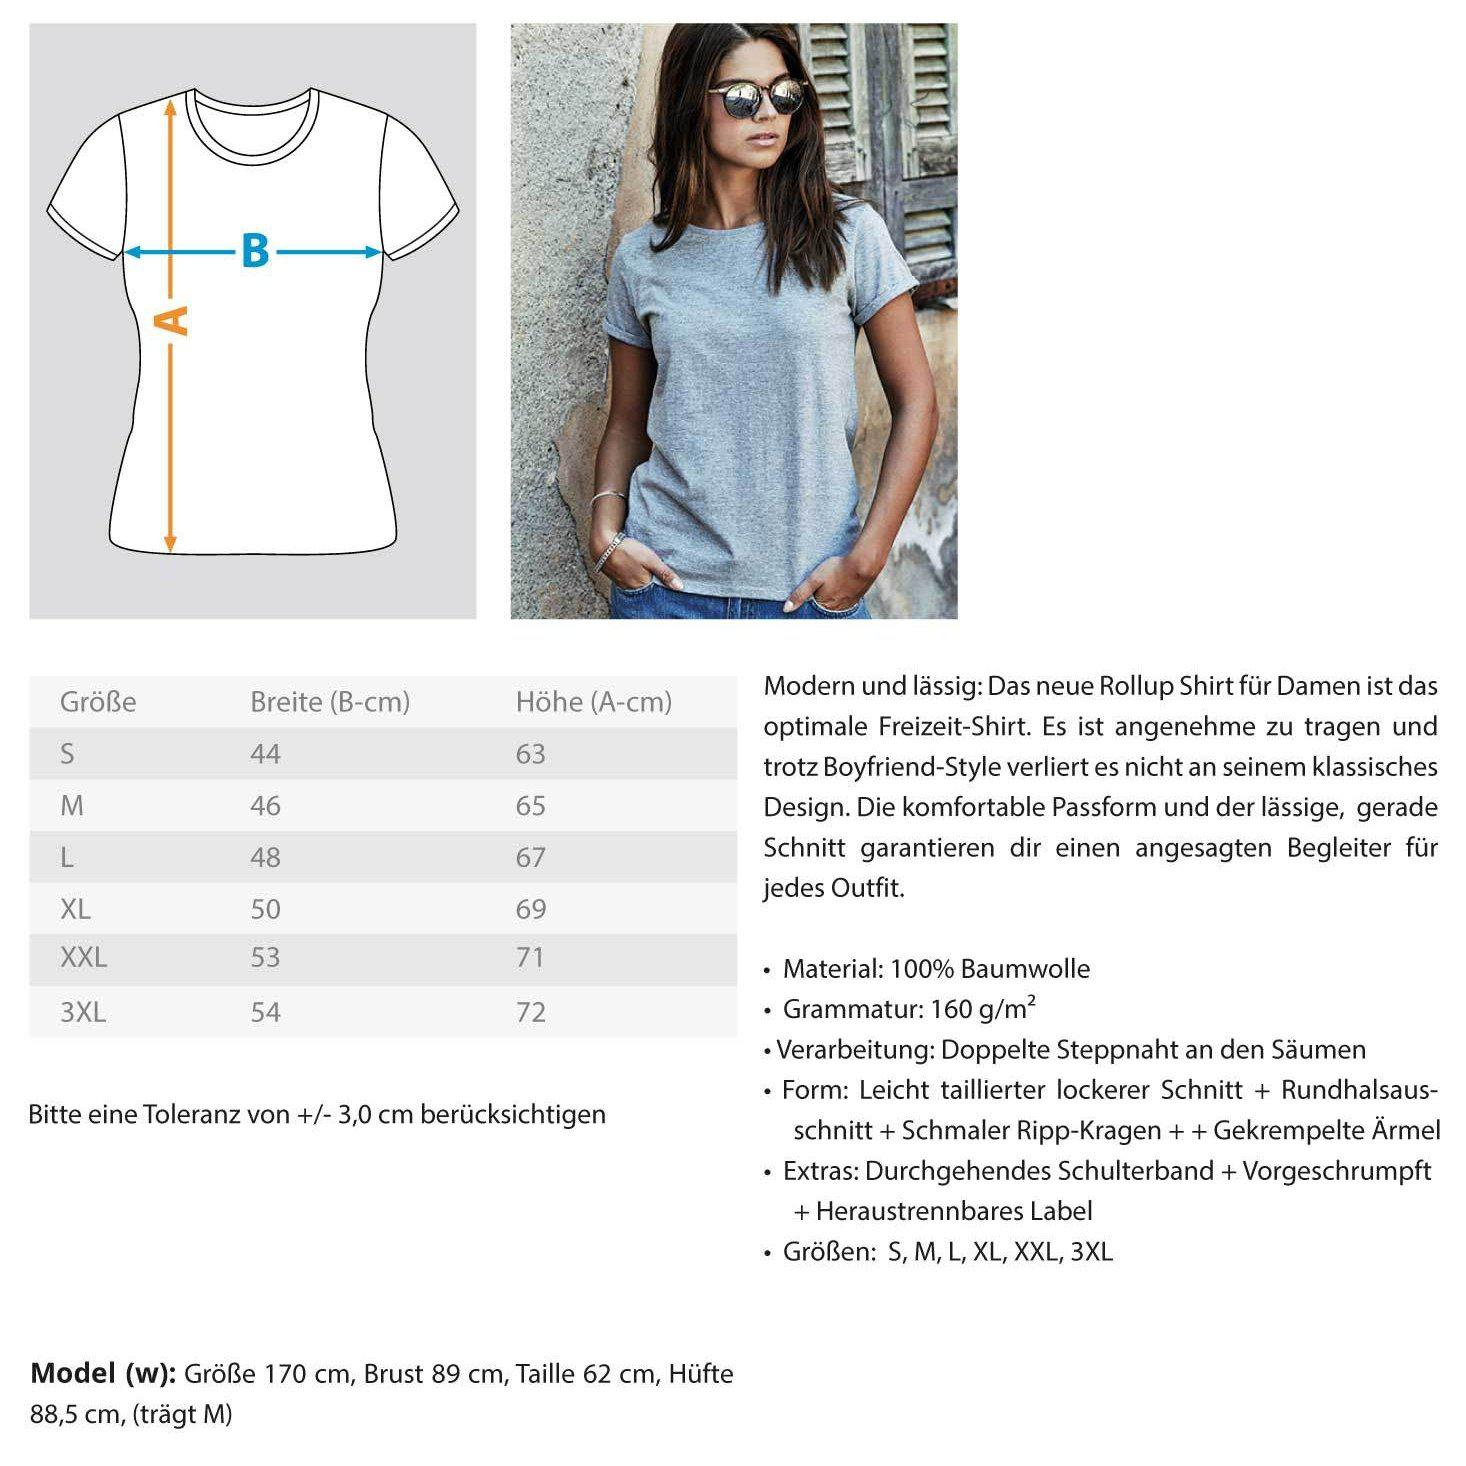 Black Triangle - Rave On!® - Damen RollUp Shirt Women Rollup Shirt - Rave On!® der Club & Techno Szene Shop für Coole Junge Mode Streetwear Style & Fashion Outfits + Sexy Festival 420 Stuff